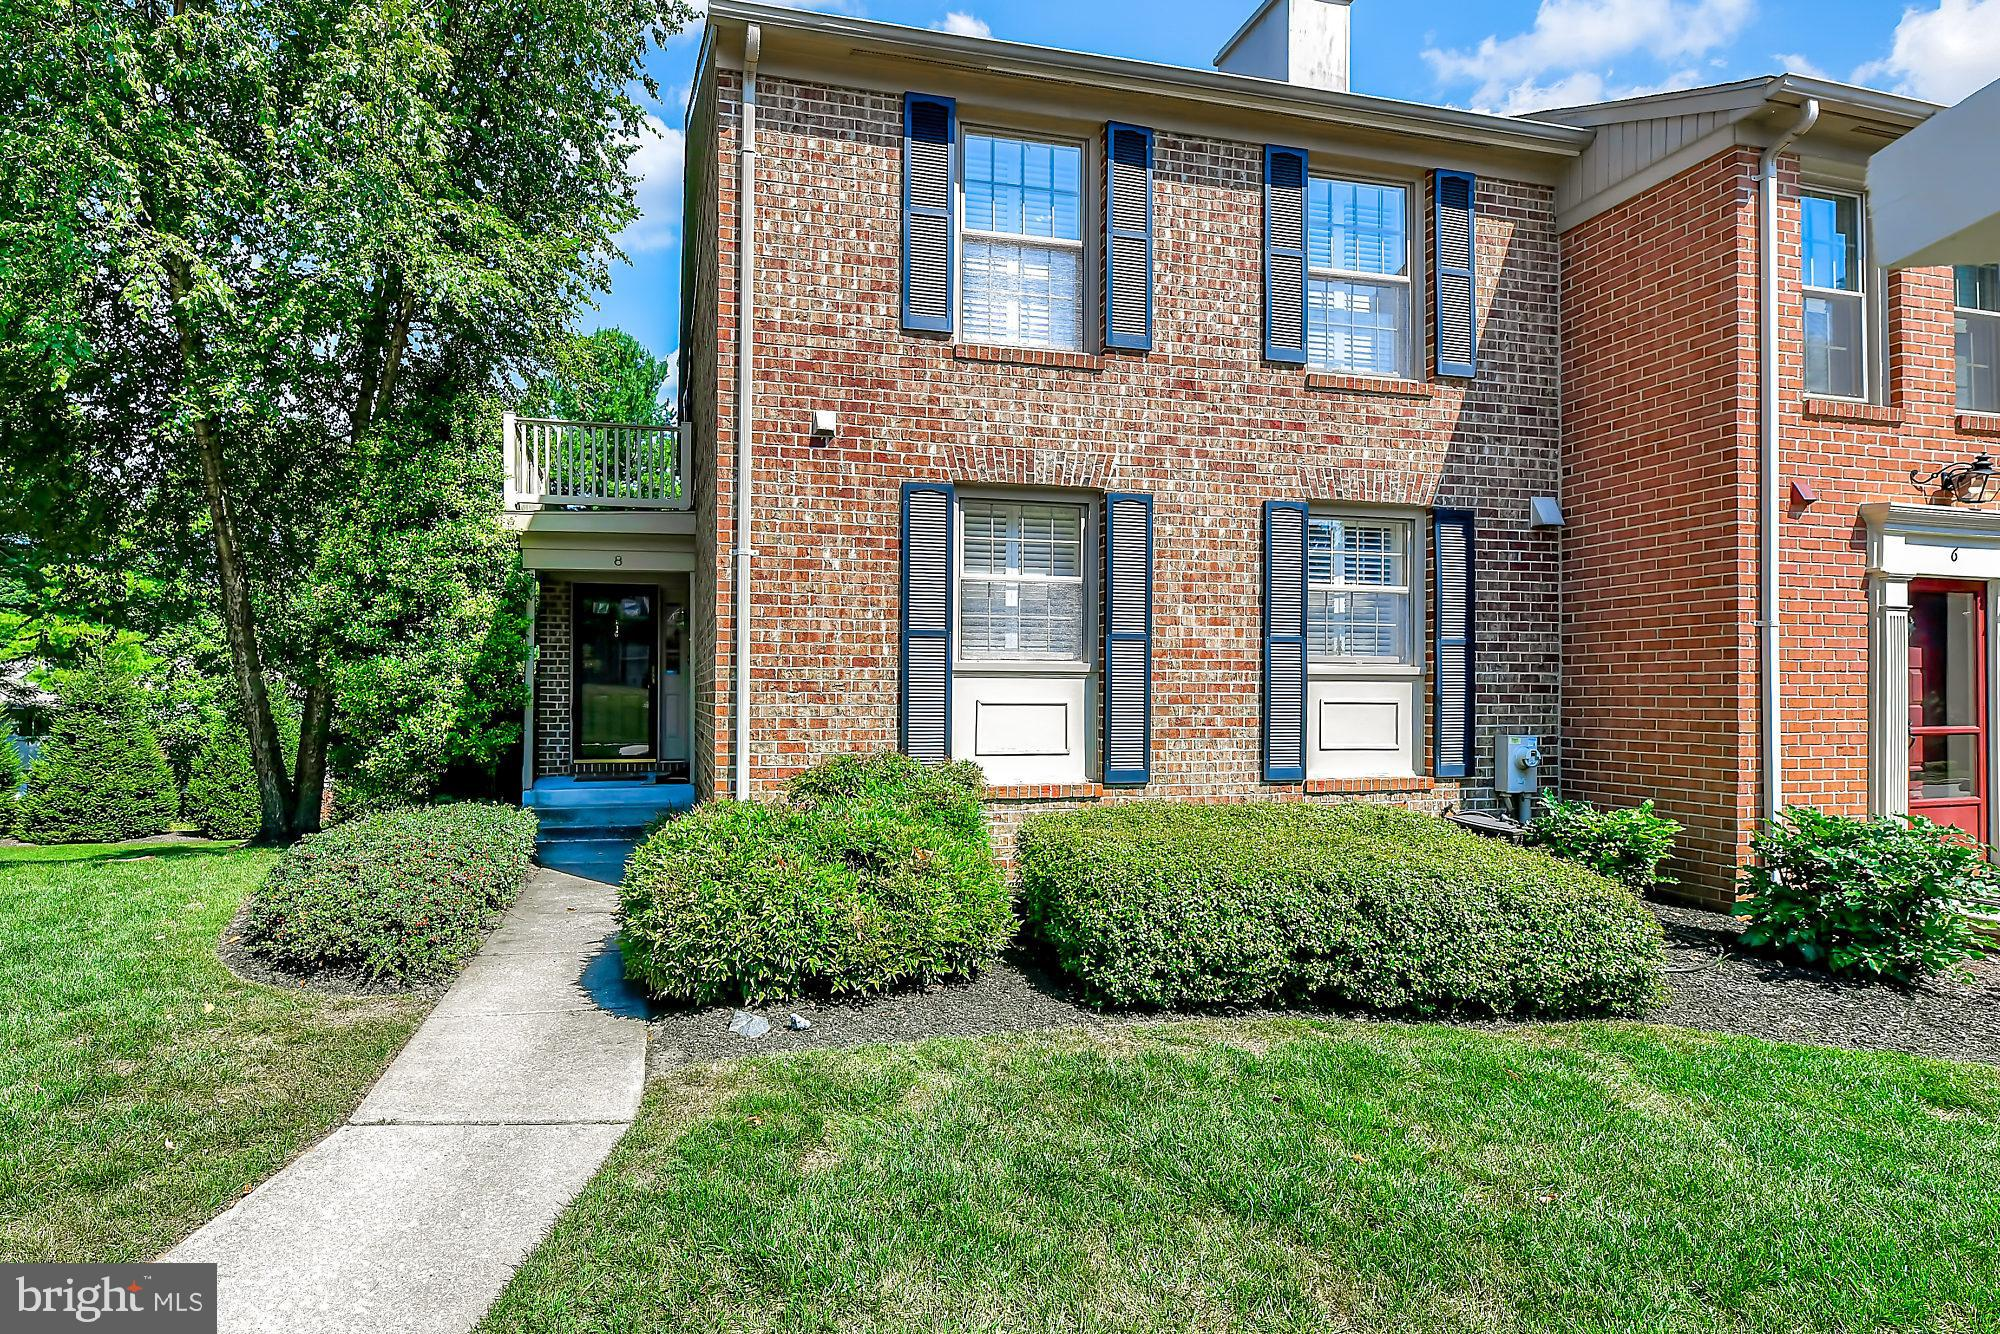 8 INVERIN CIRCLE, LUTHERVILLE TIMONIUM, MD 21093